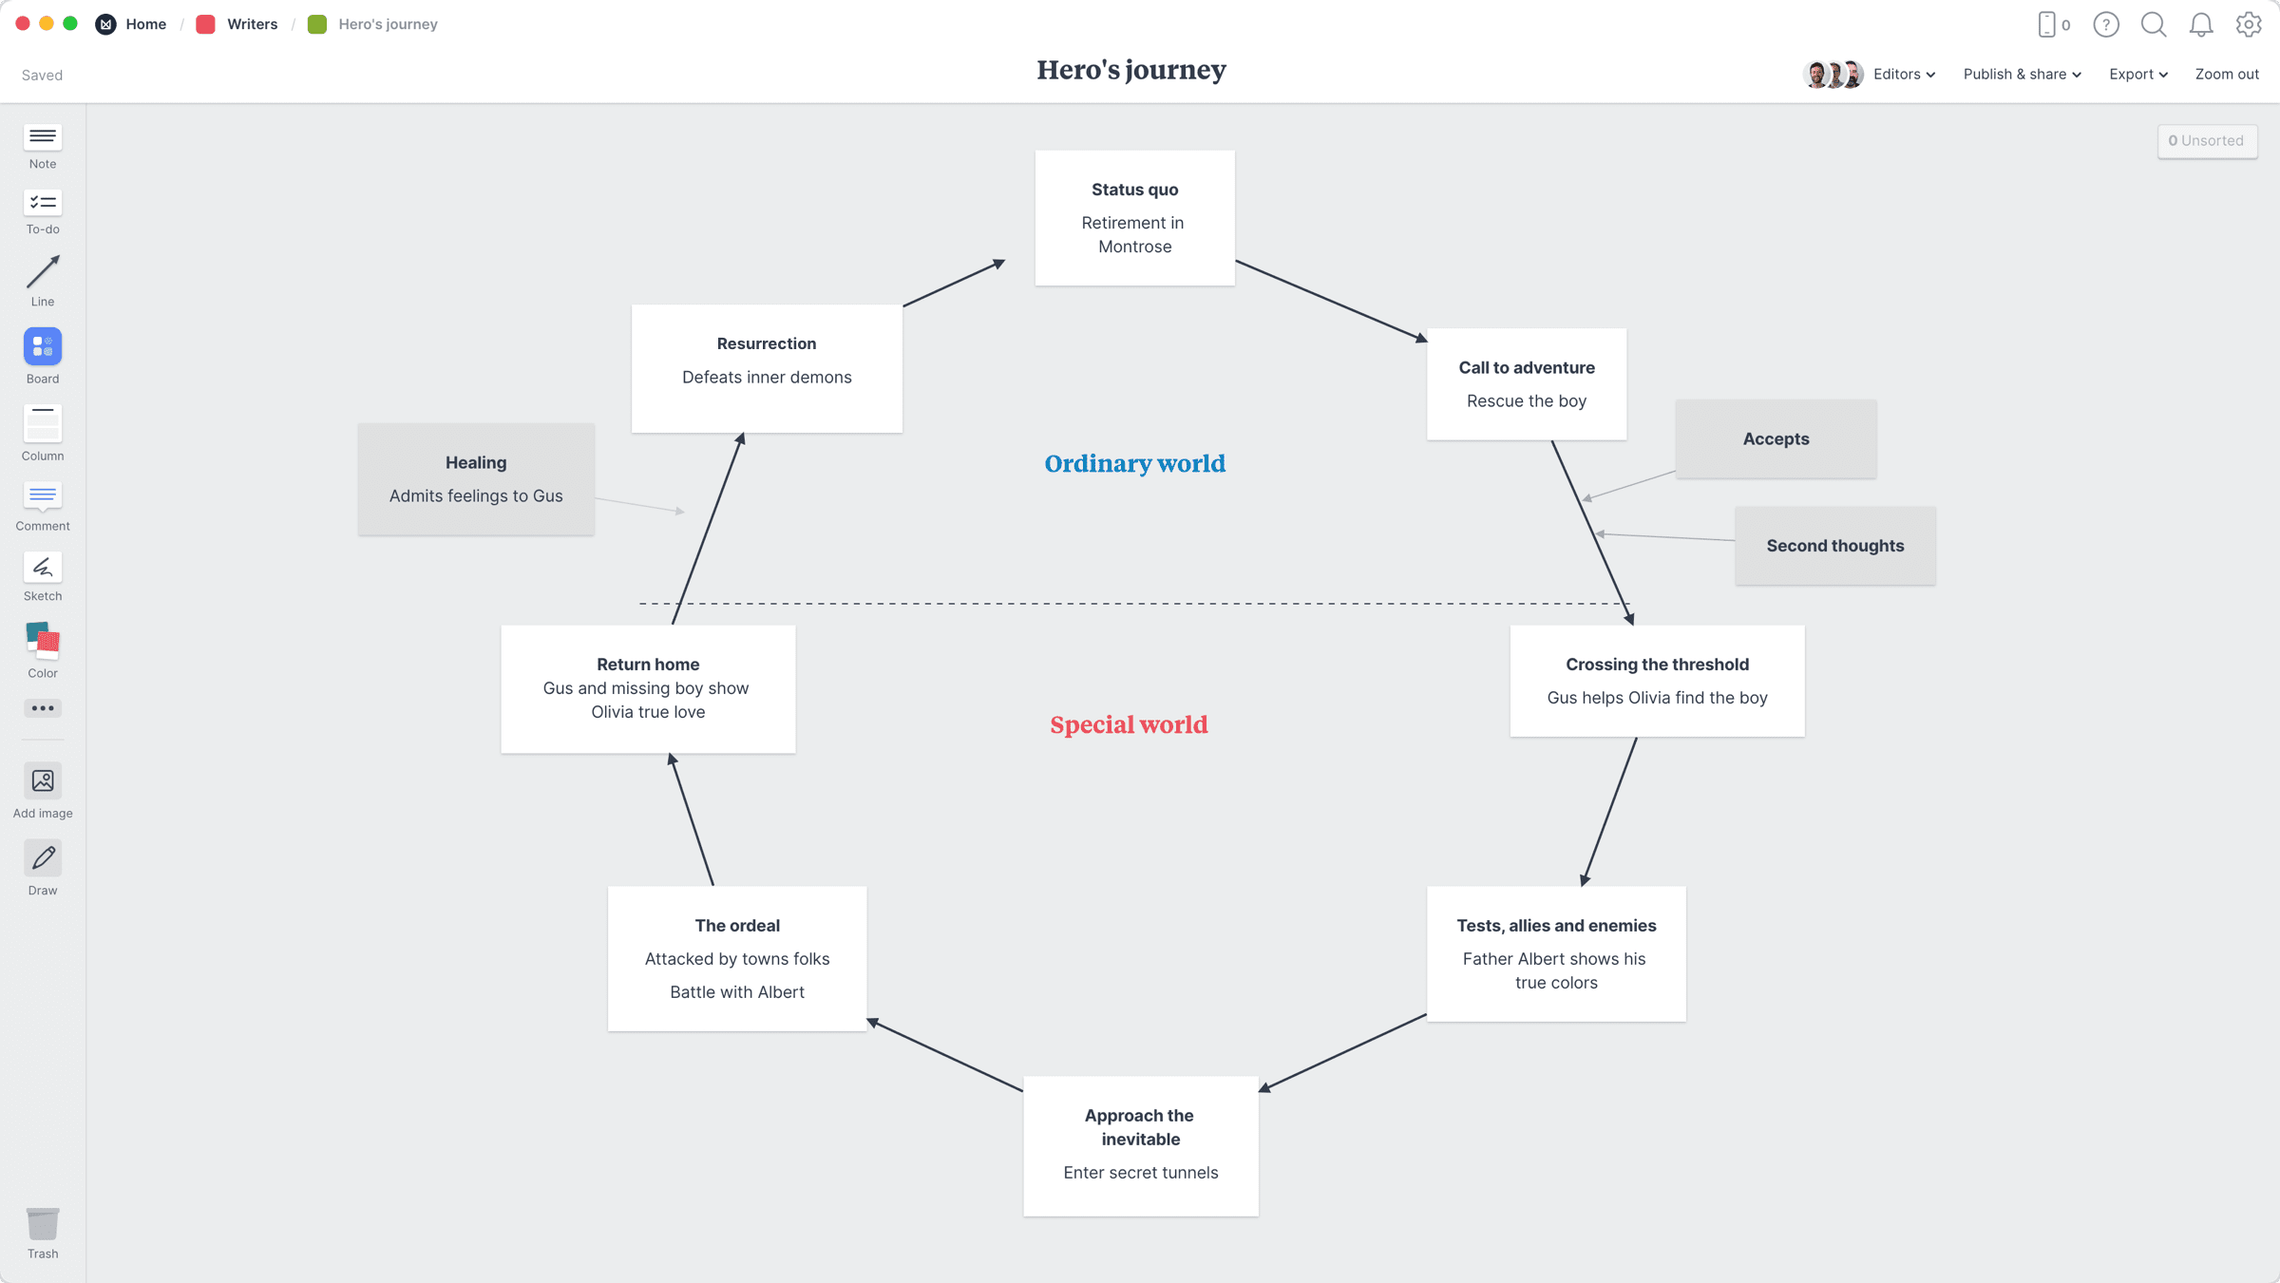 Hero's Journey Template, within the Milanote app